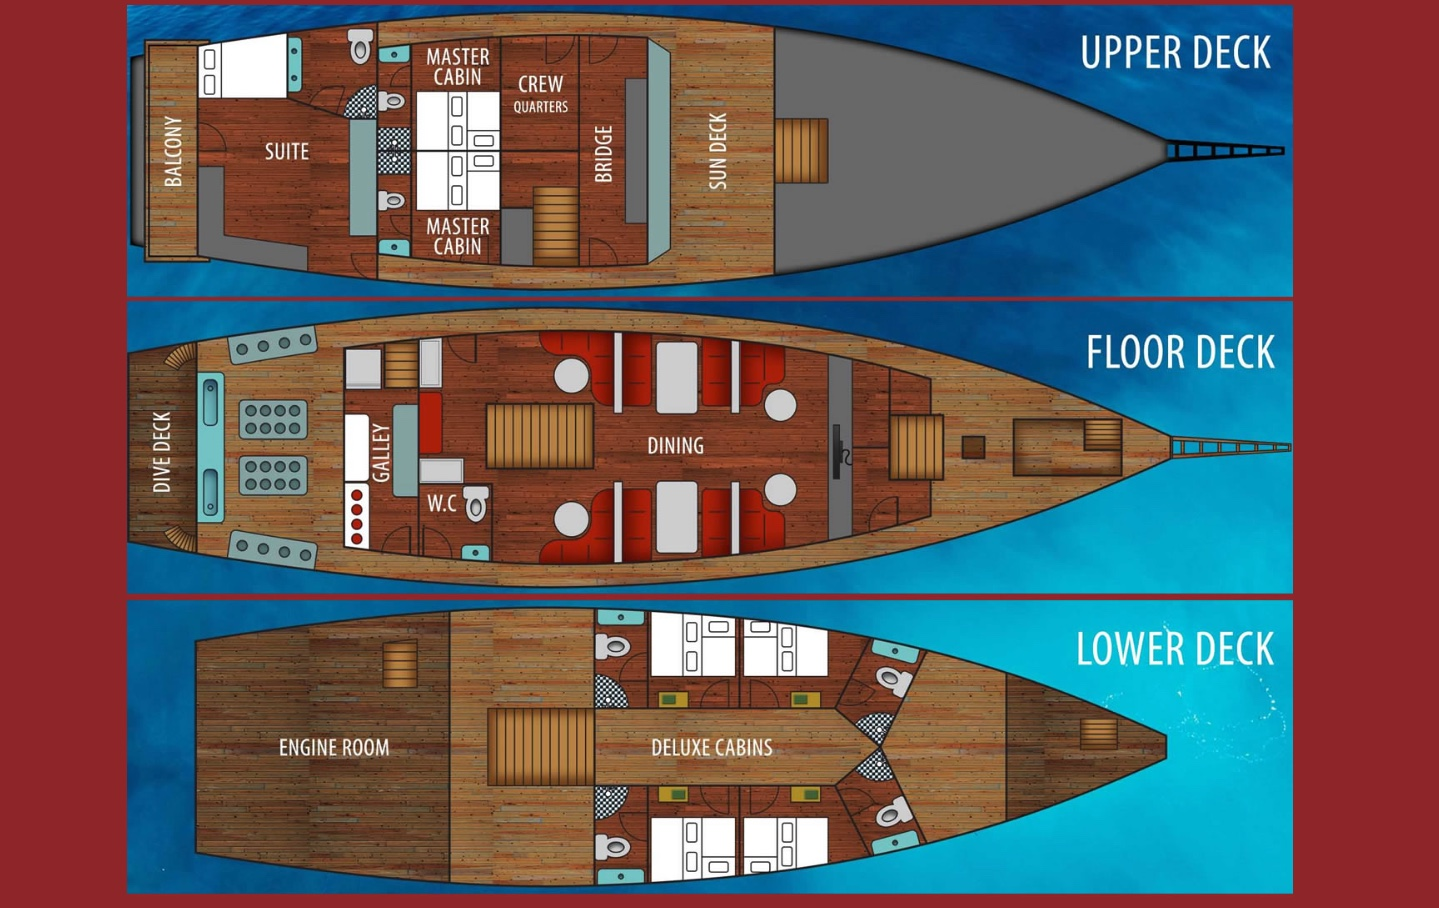 La Galigo Deck Plan floorplan